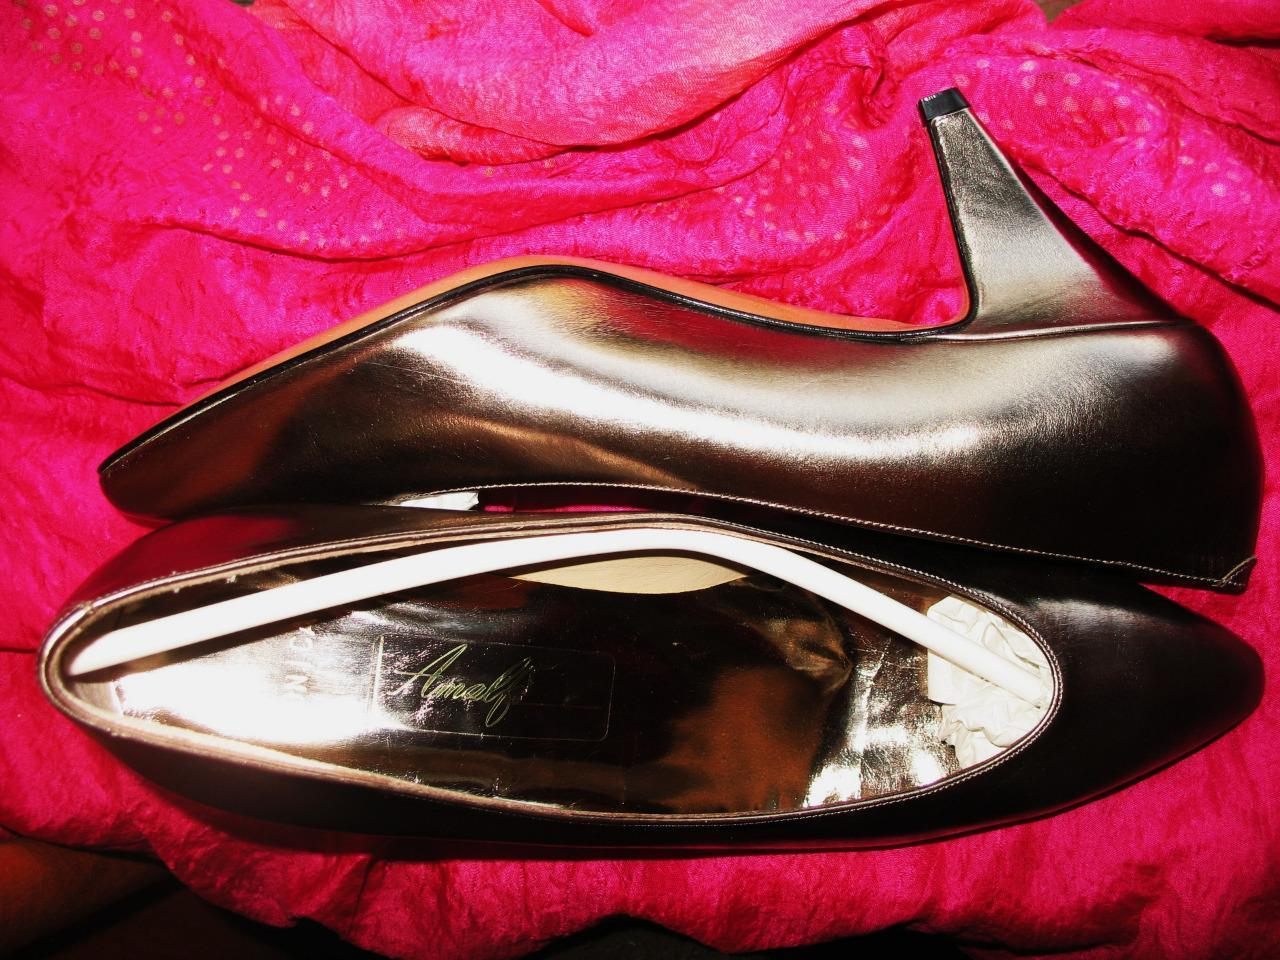 AMALFI Schuhe BRONZE LEATHER CLASSY PUMPS   SIZE 7.5B/38 MADE IN ITALY